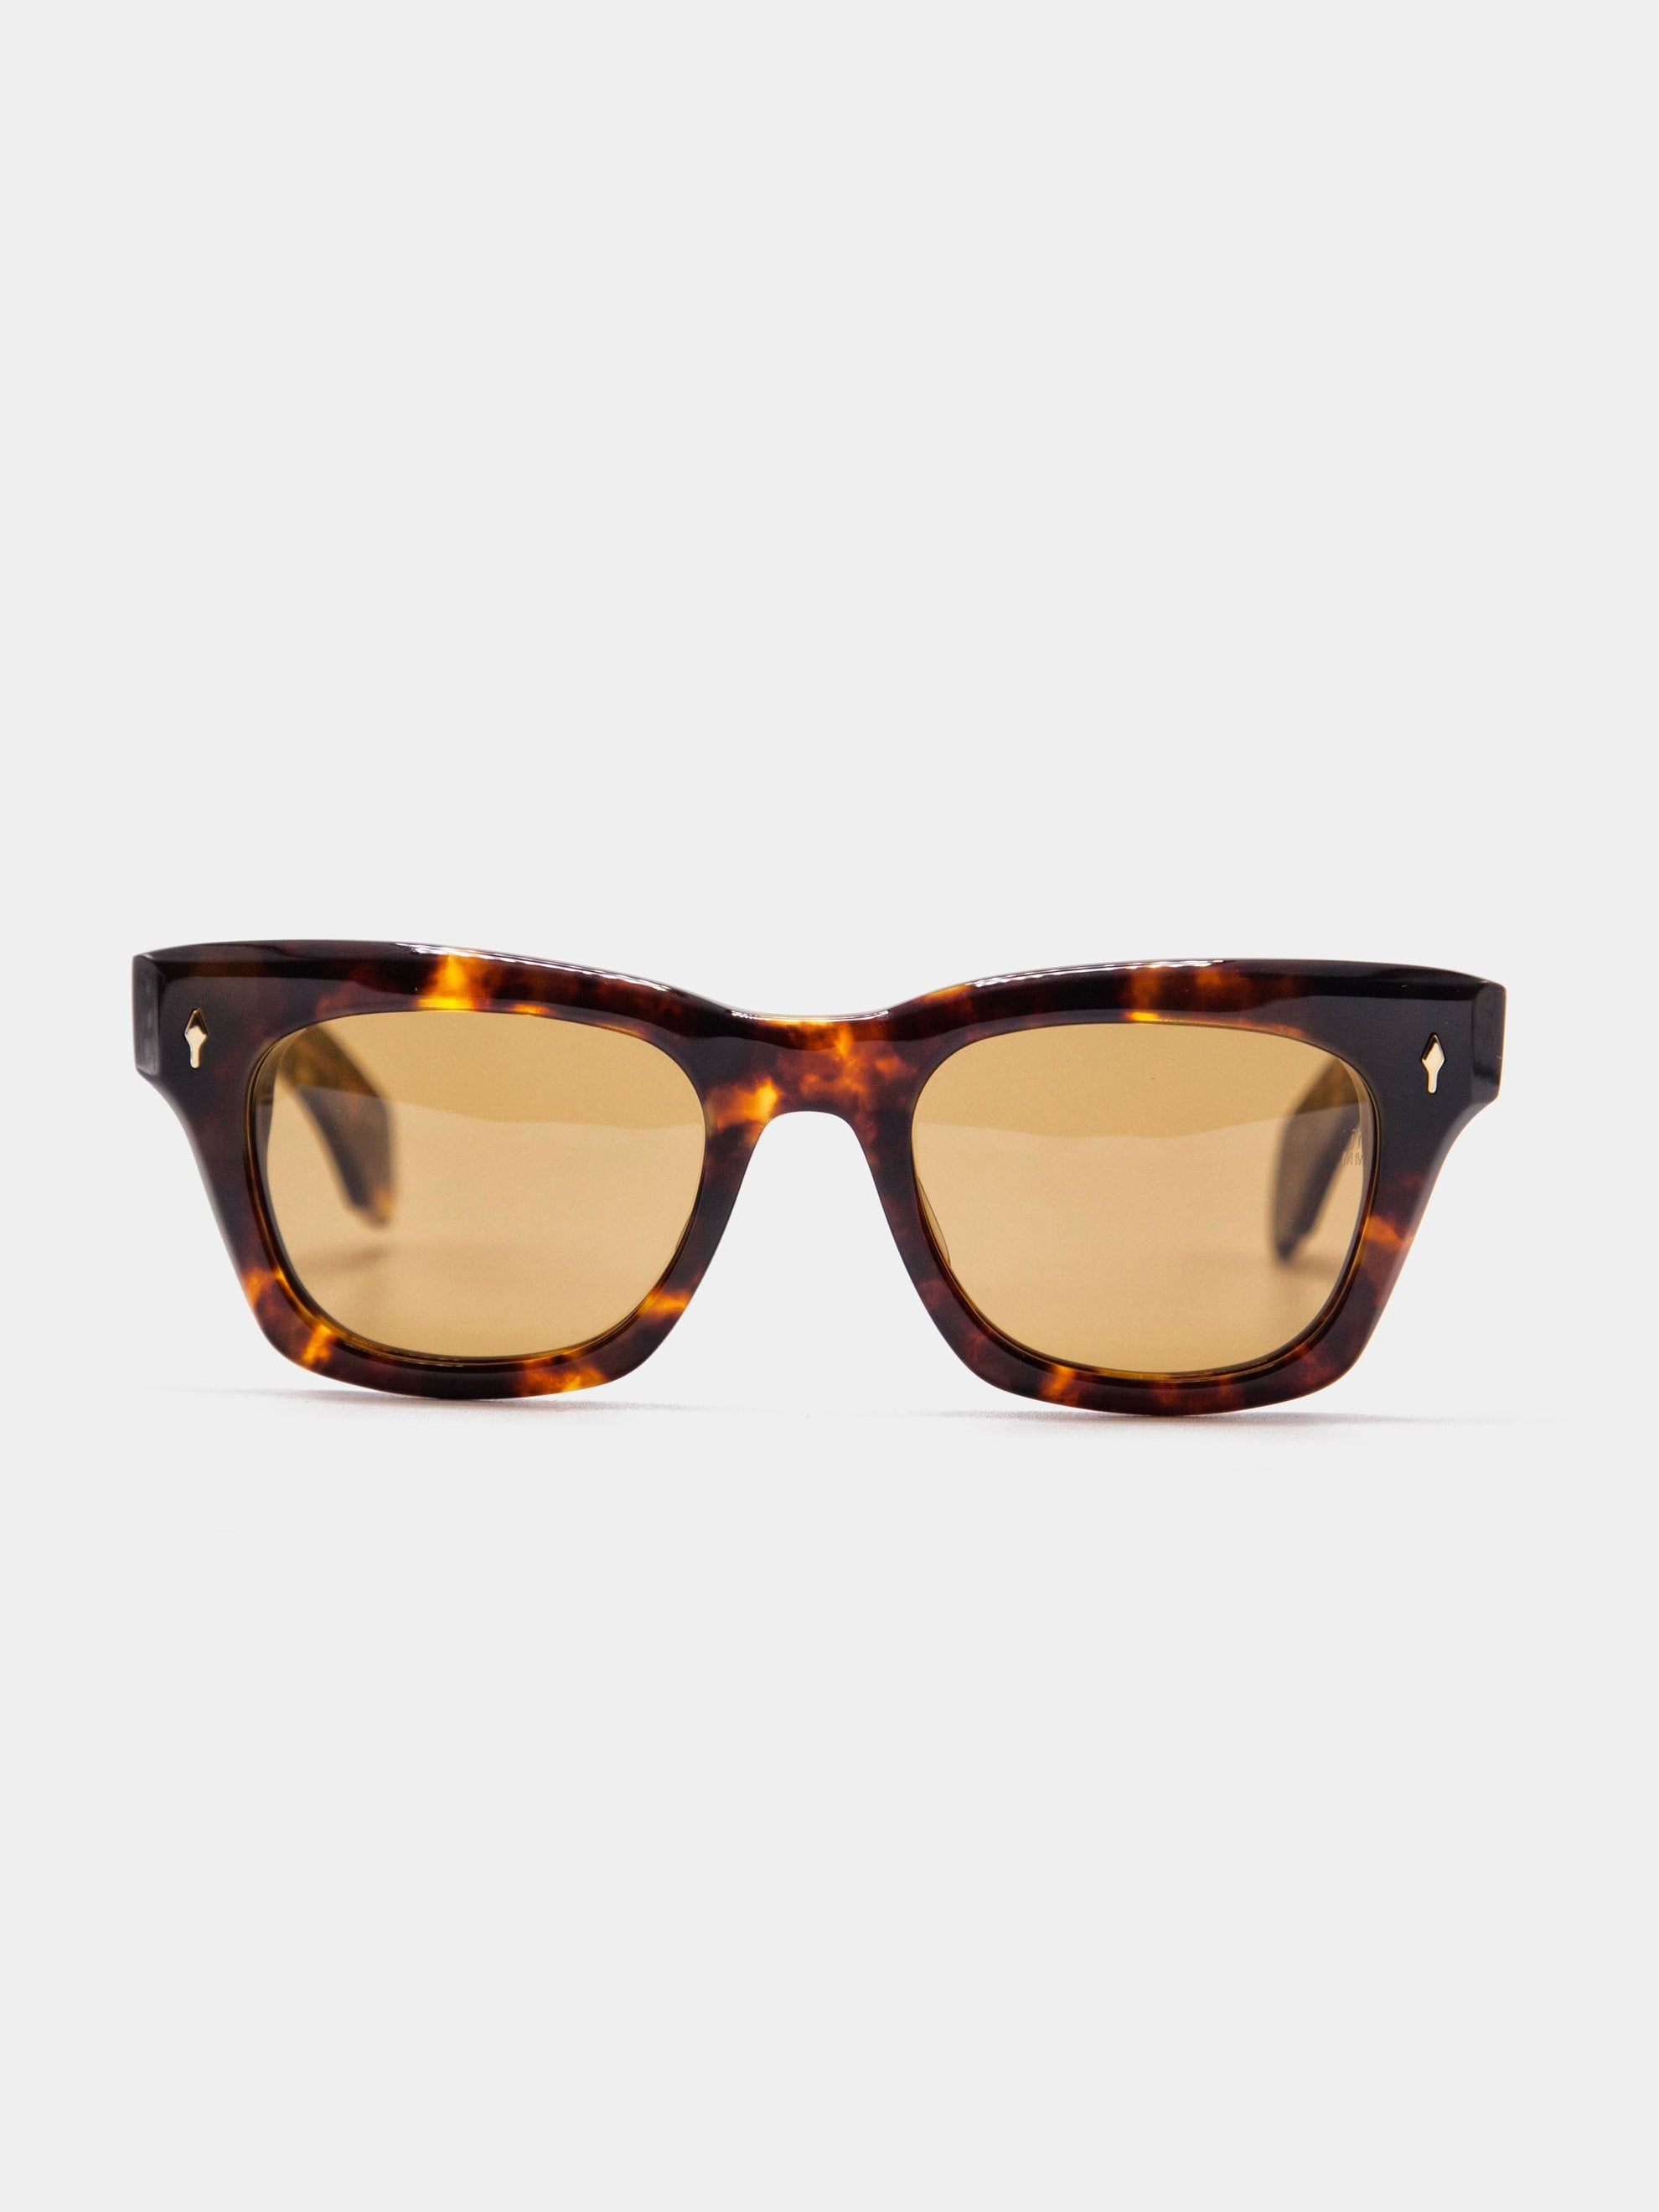 Havana (Brown Glass/10k Gold) Dealan 1